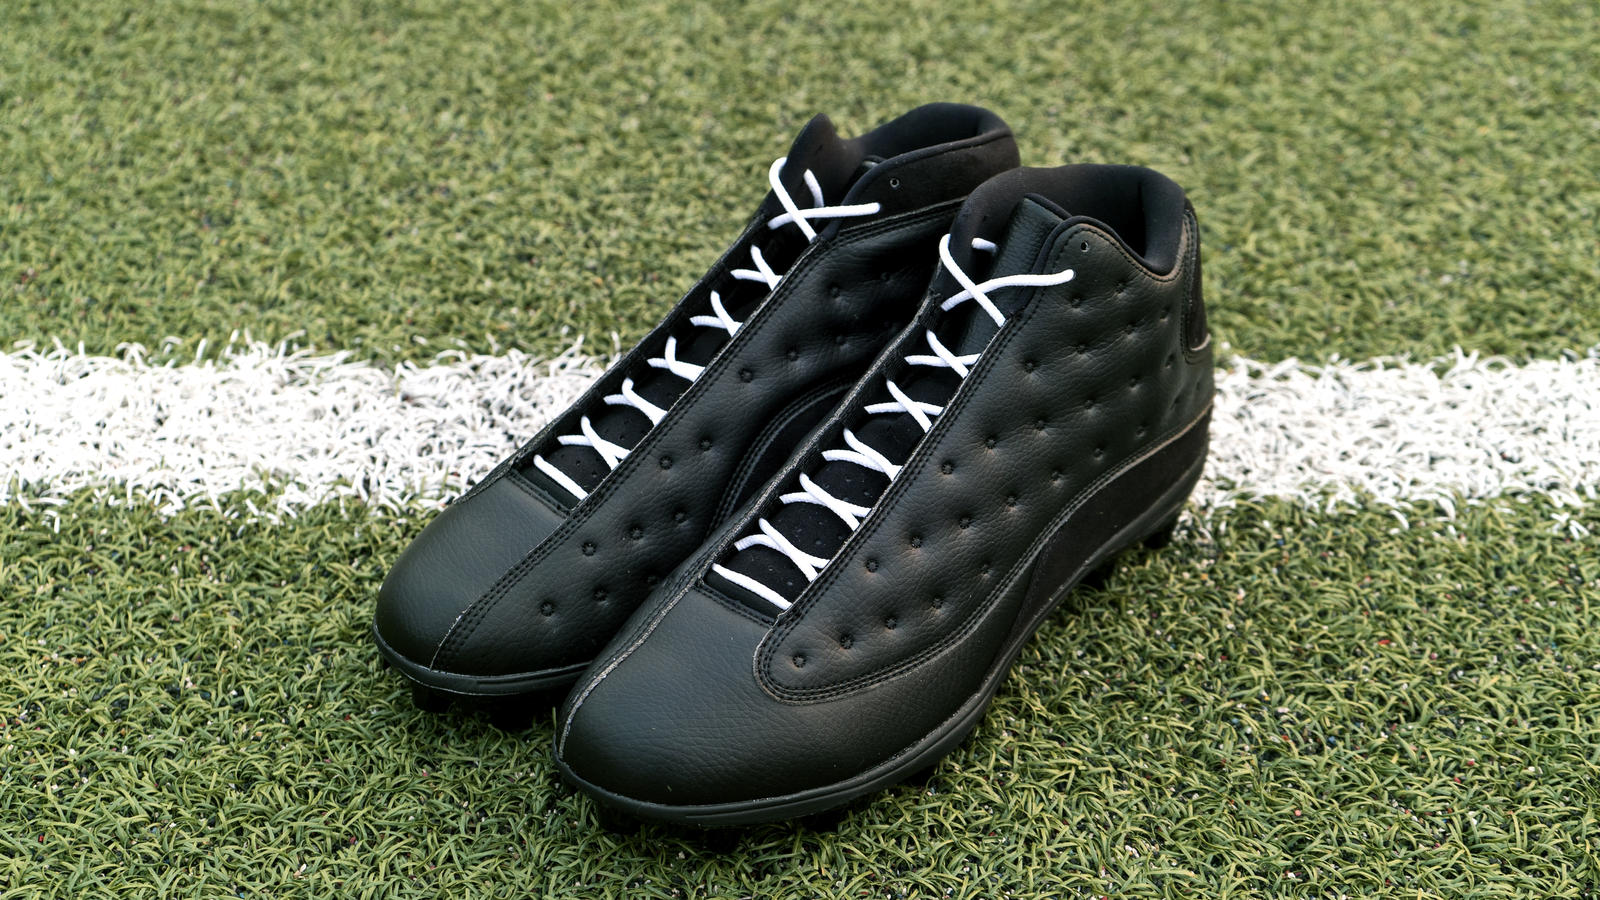 Jordan Brand's Football Roster Debuts New Air Jordan XIII PE Cleats 17